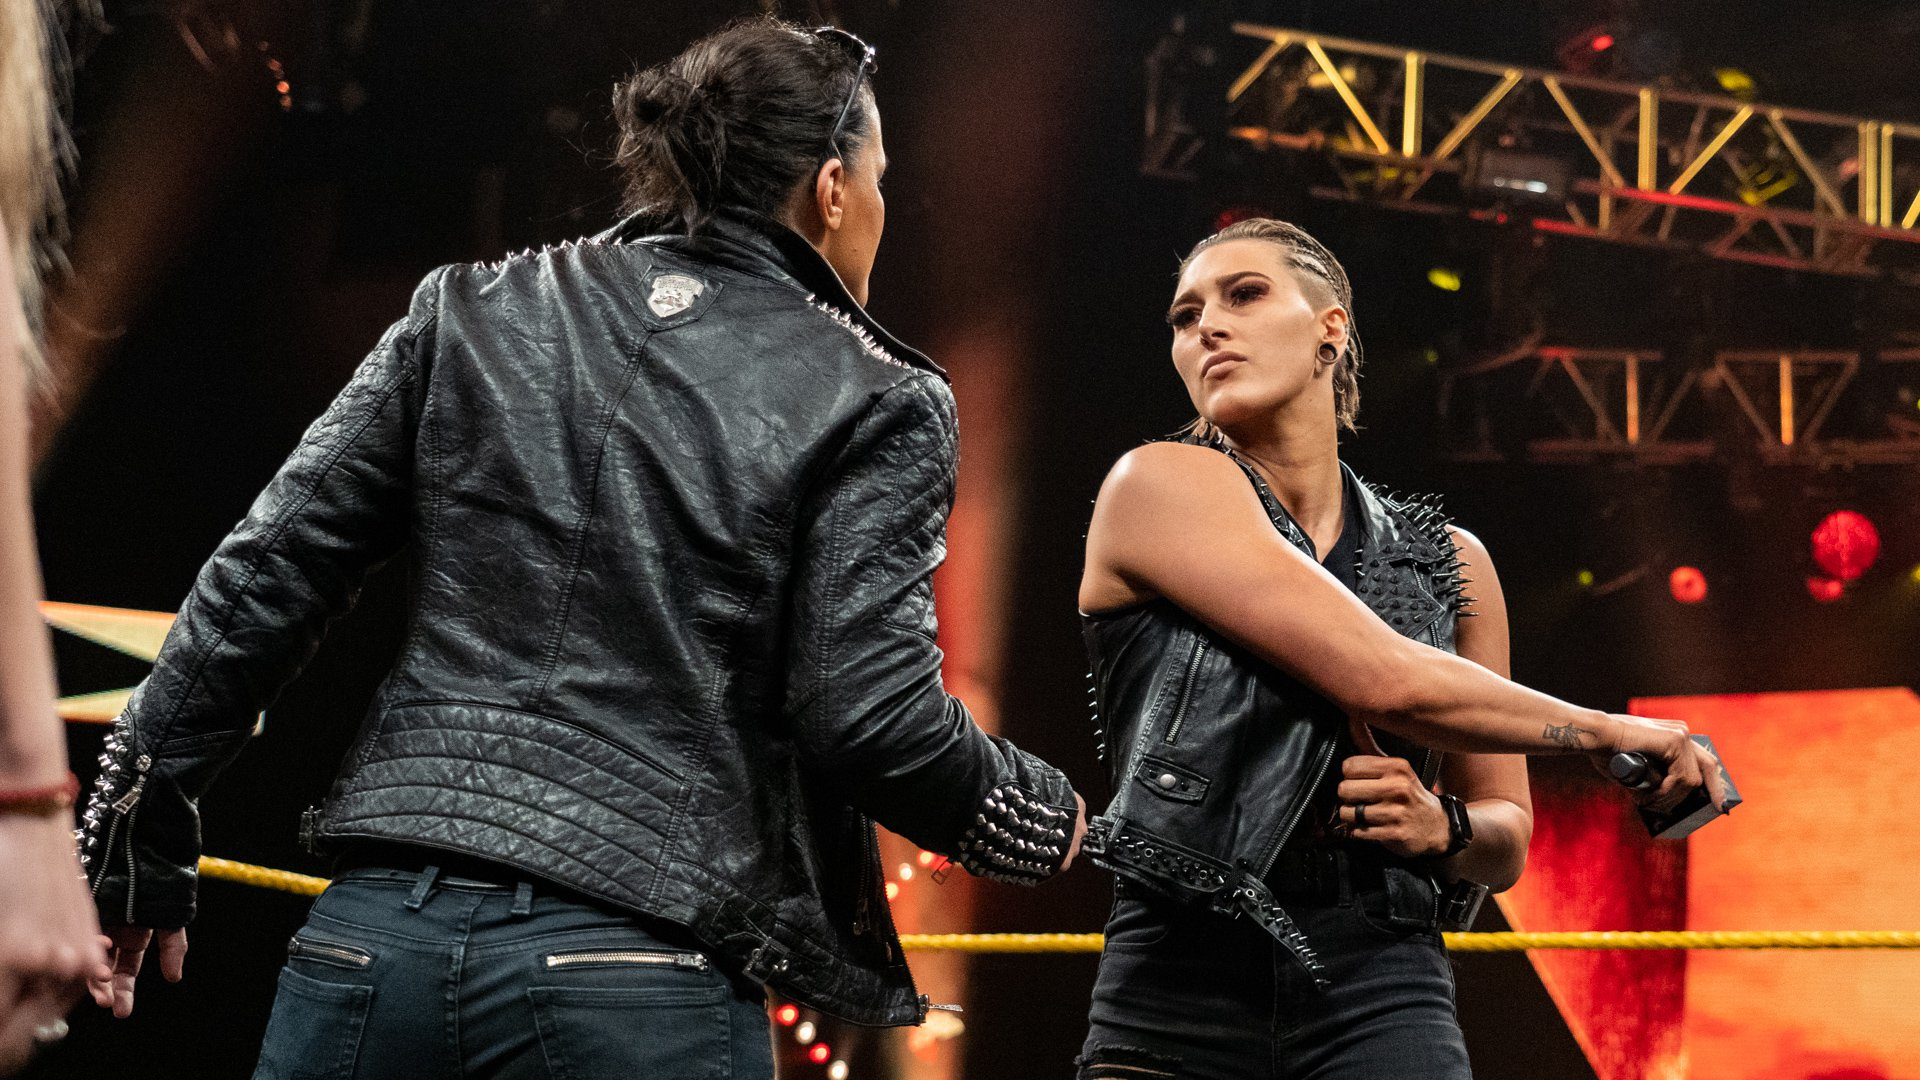 Nxt Womens Champion Shayna Baszler Backed Down From Rhea